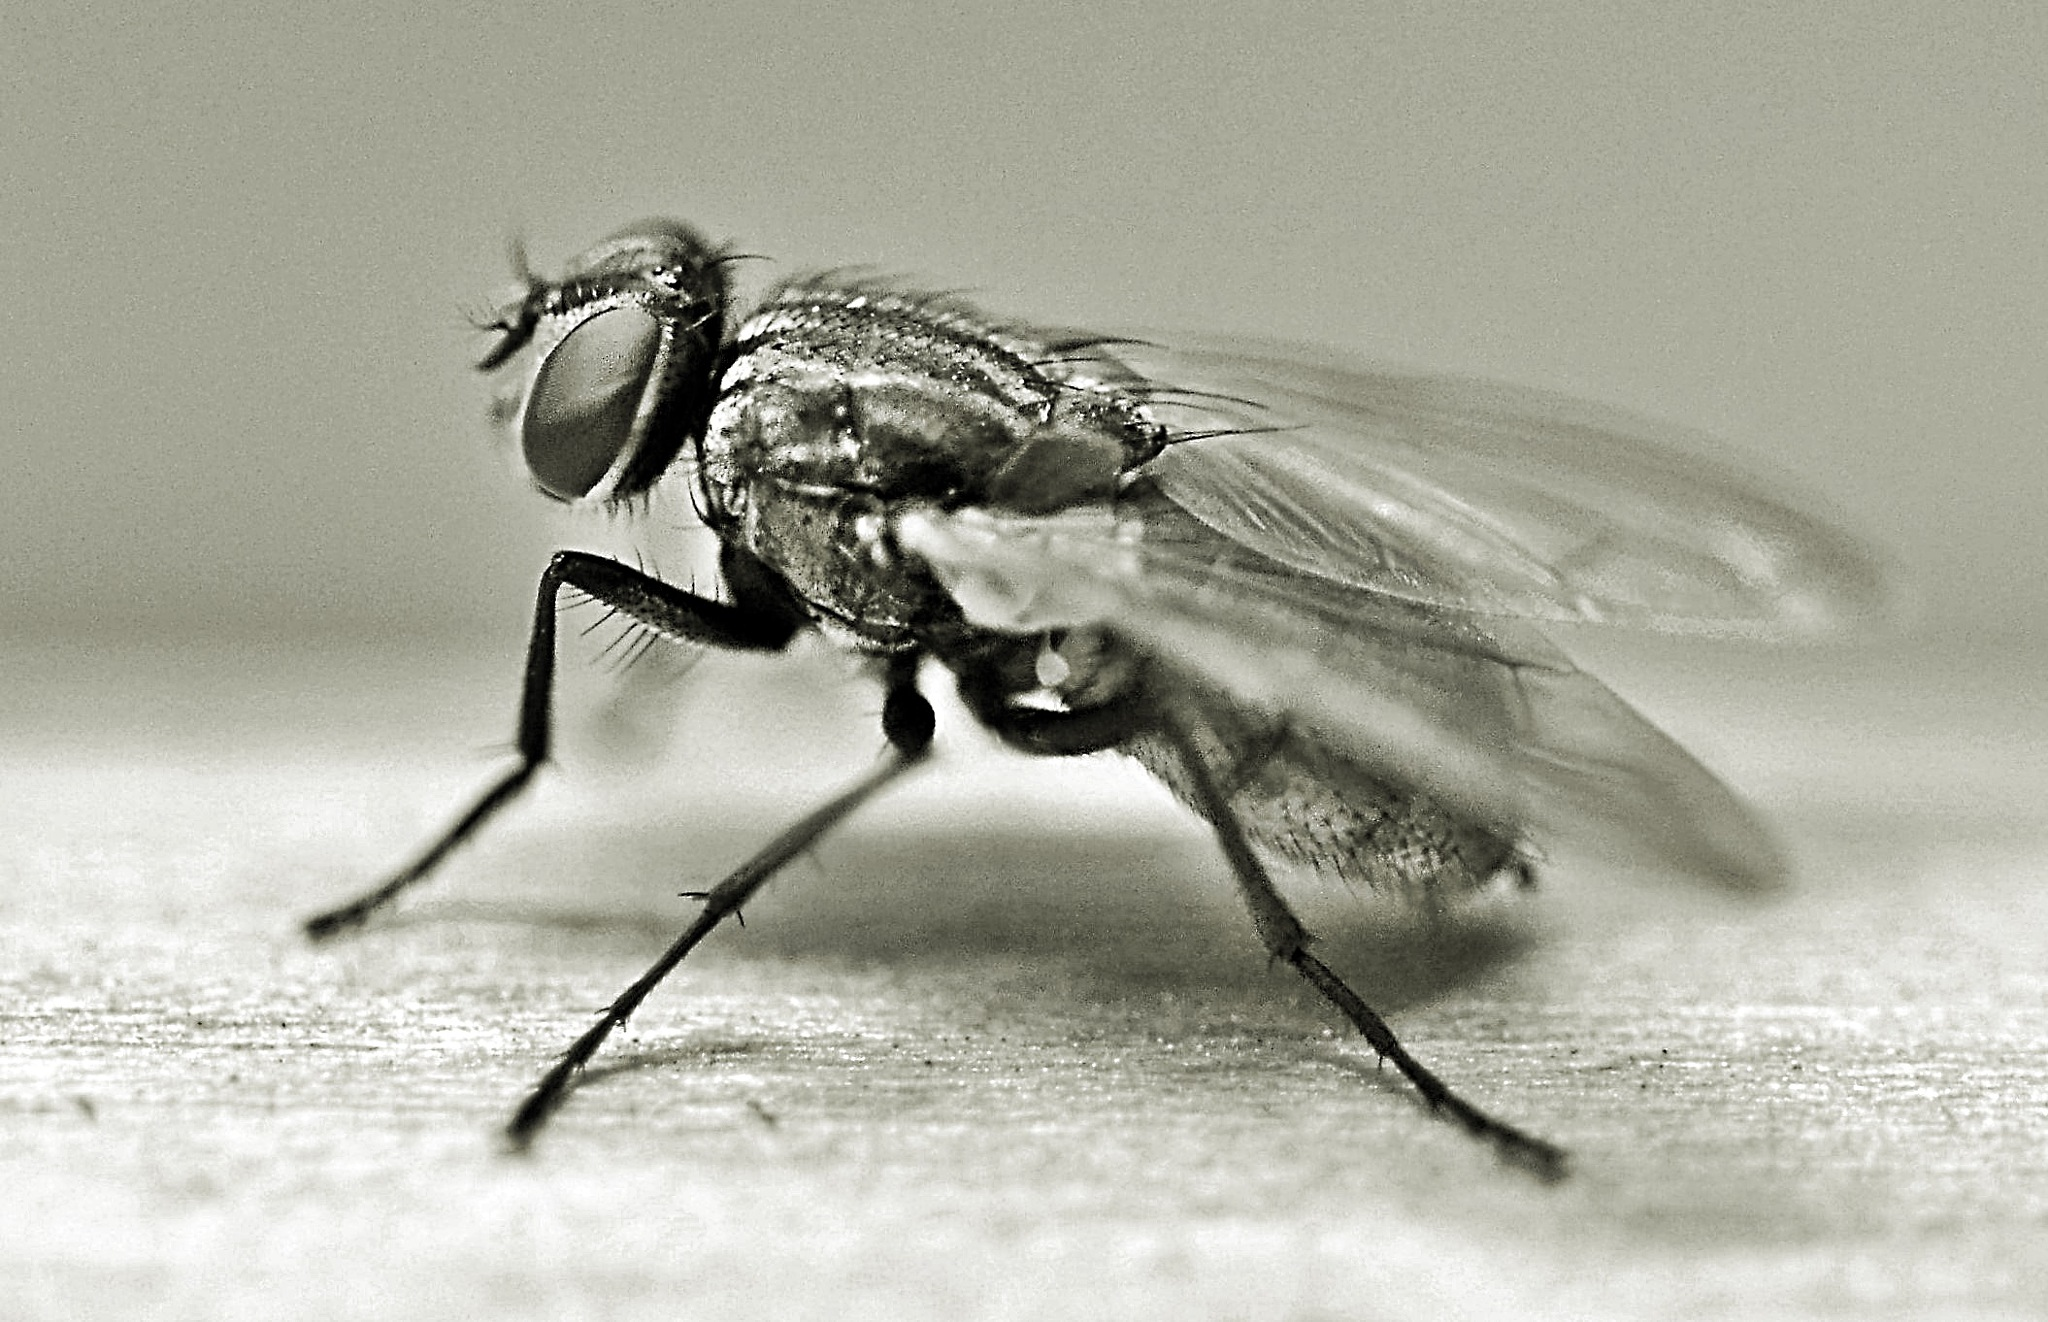 housefly by rollepersson